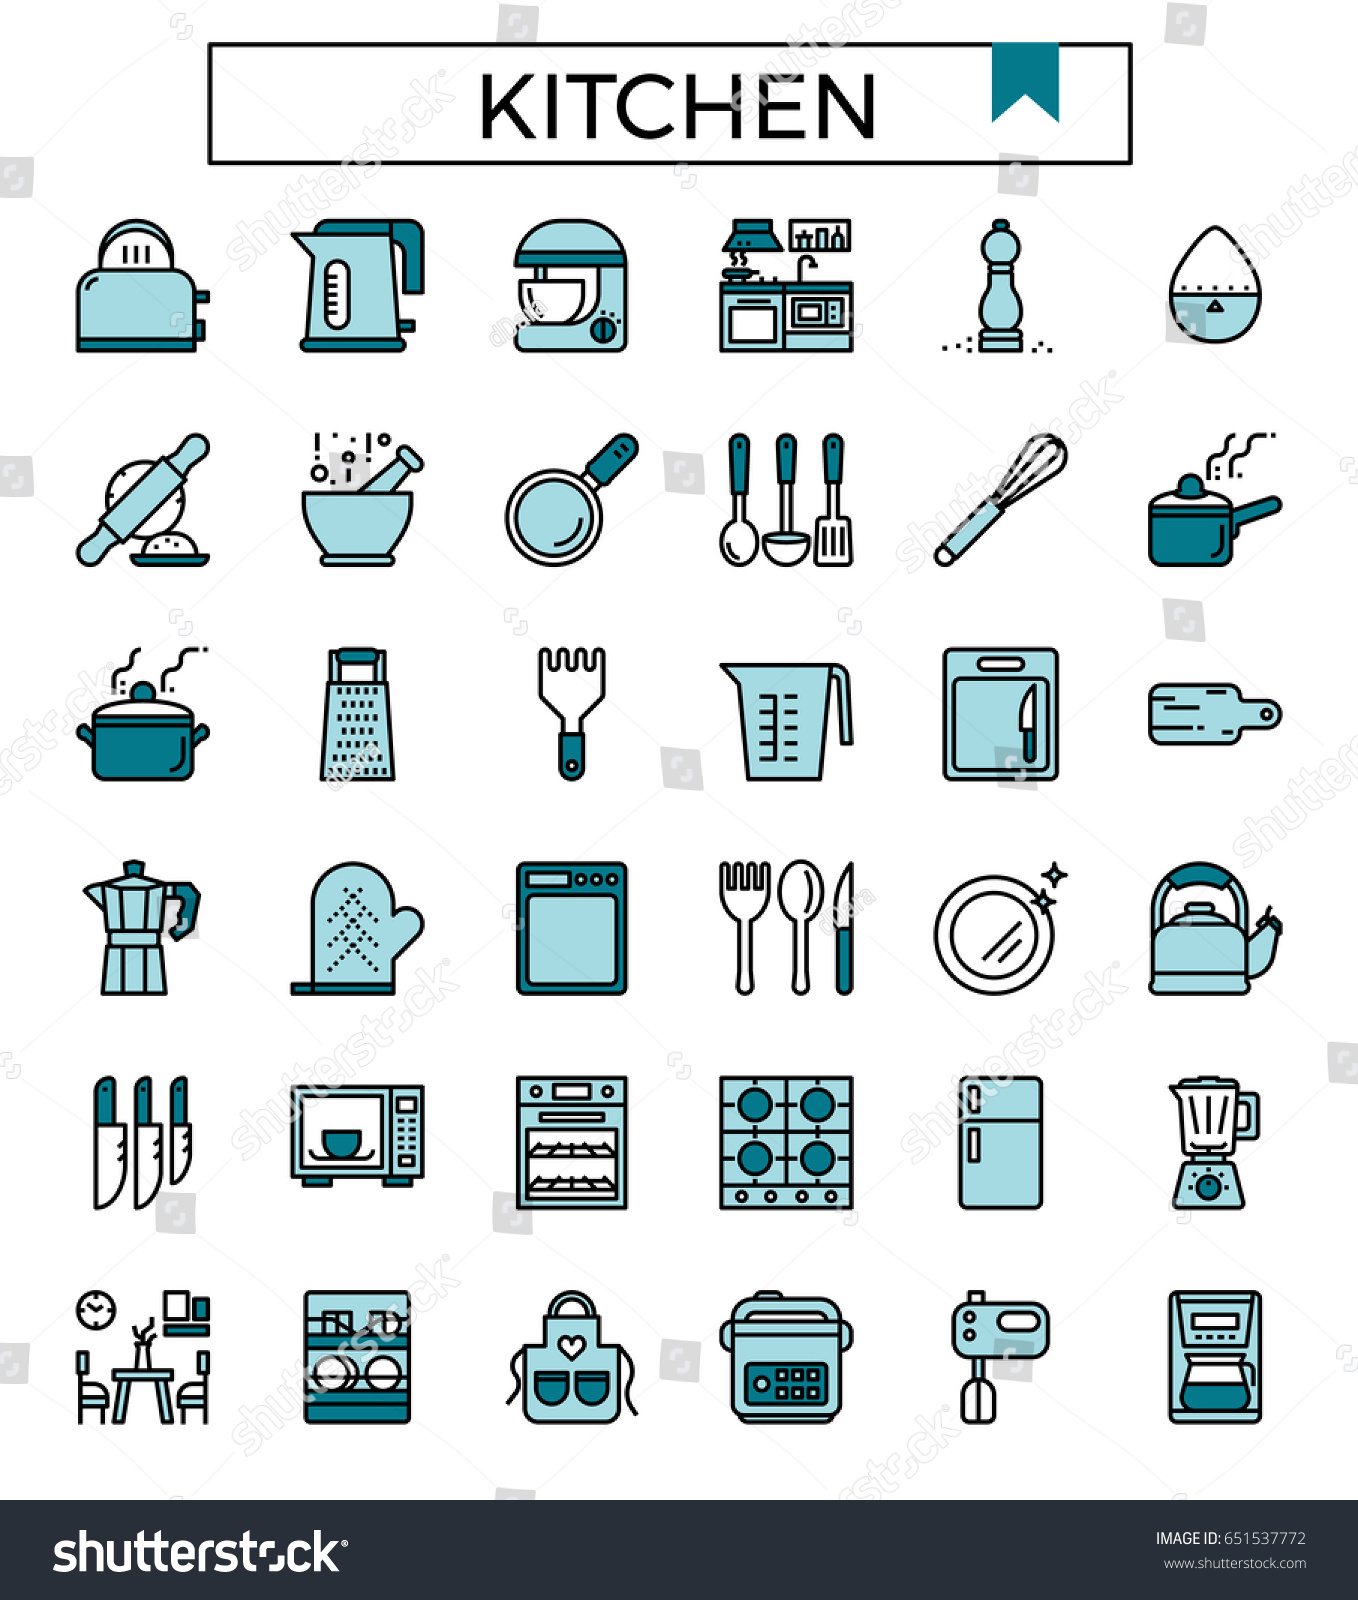 Kitchen Icon Fill Color Vector Illustration Stock Vector (Royalty ...